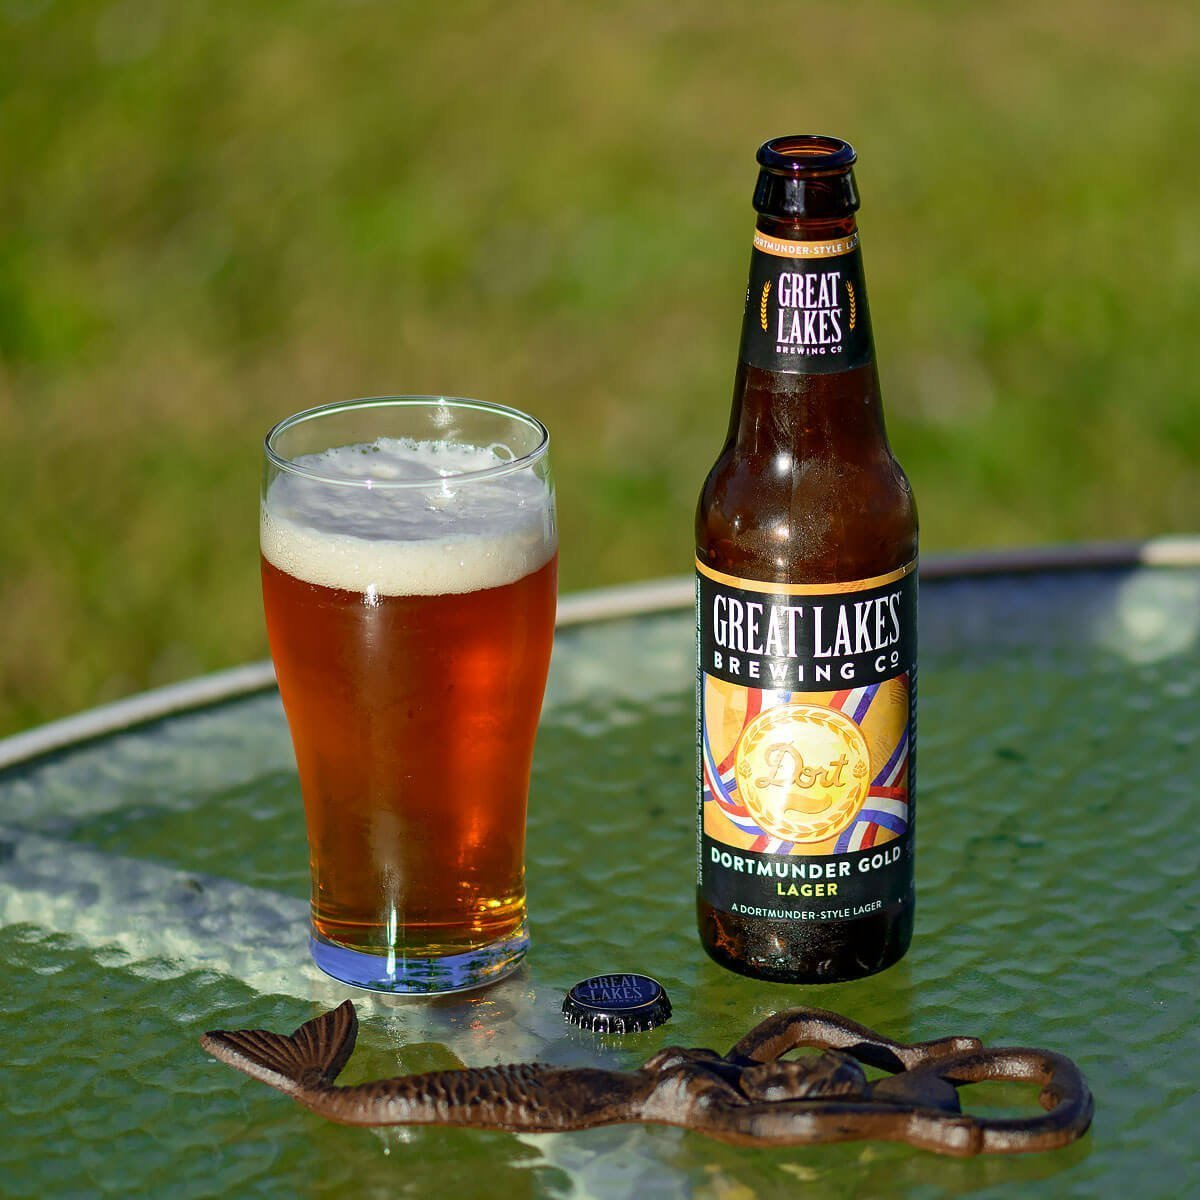 Dortmunder Gold Lager, a German-style Dortmunder Export Lager by Great Lakes Brewing Co. is light, clean, and oh so flavorful. Read the craft beer review.